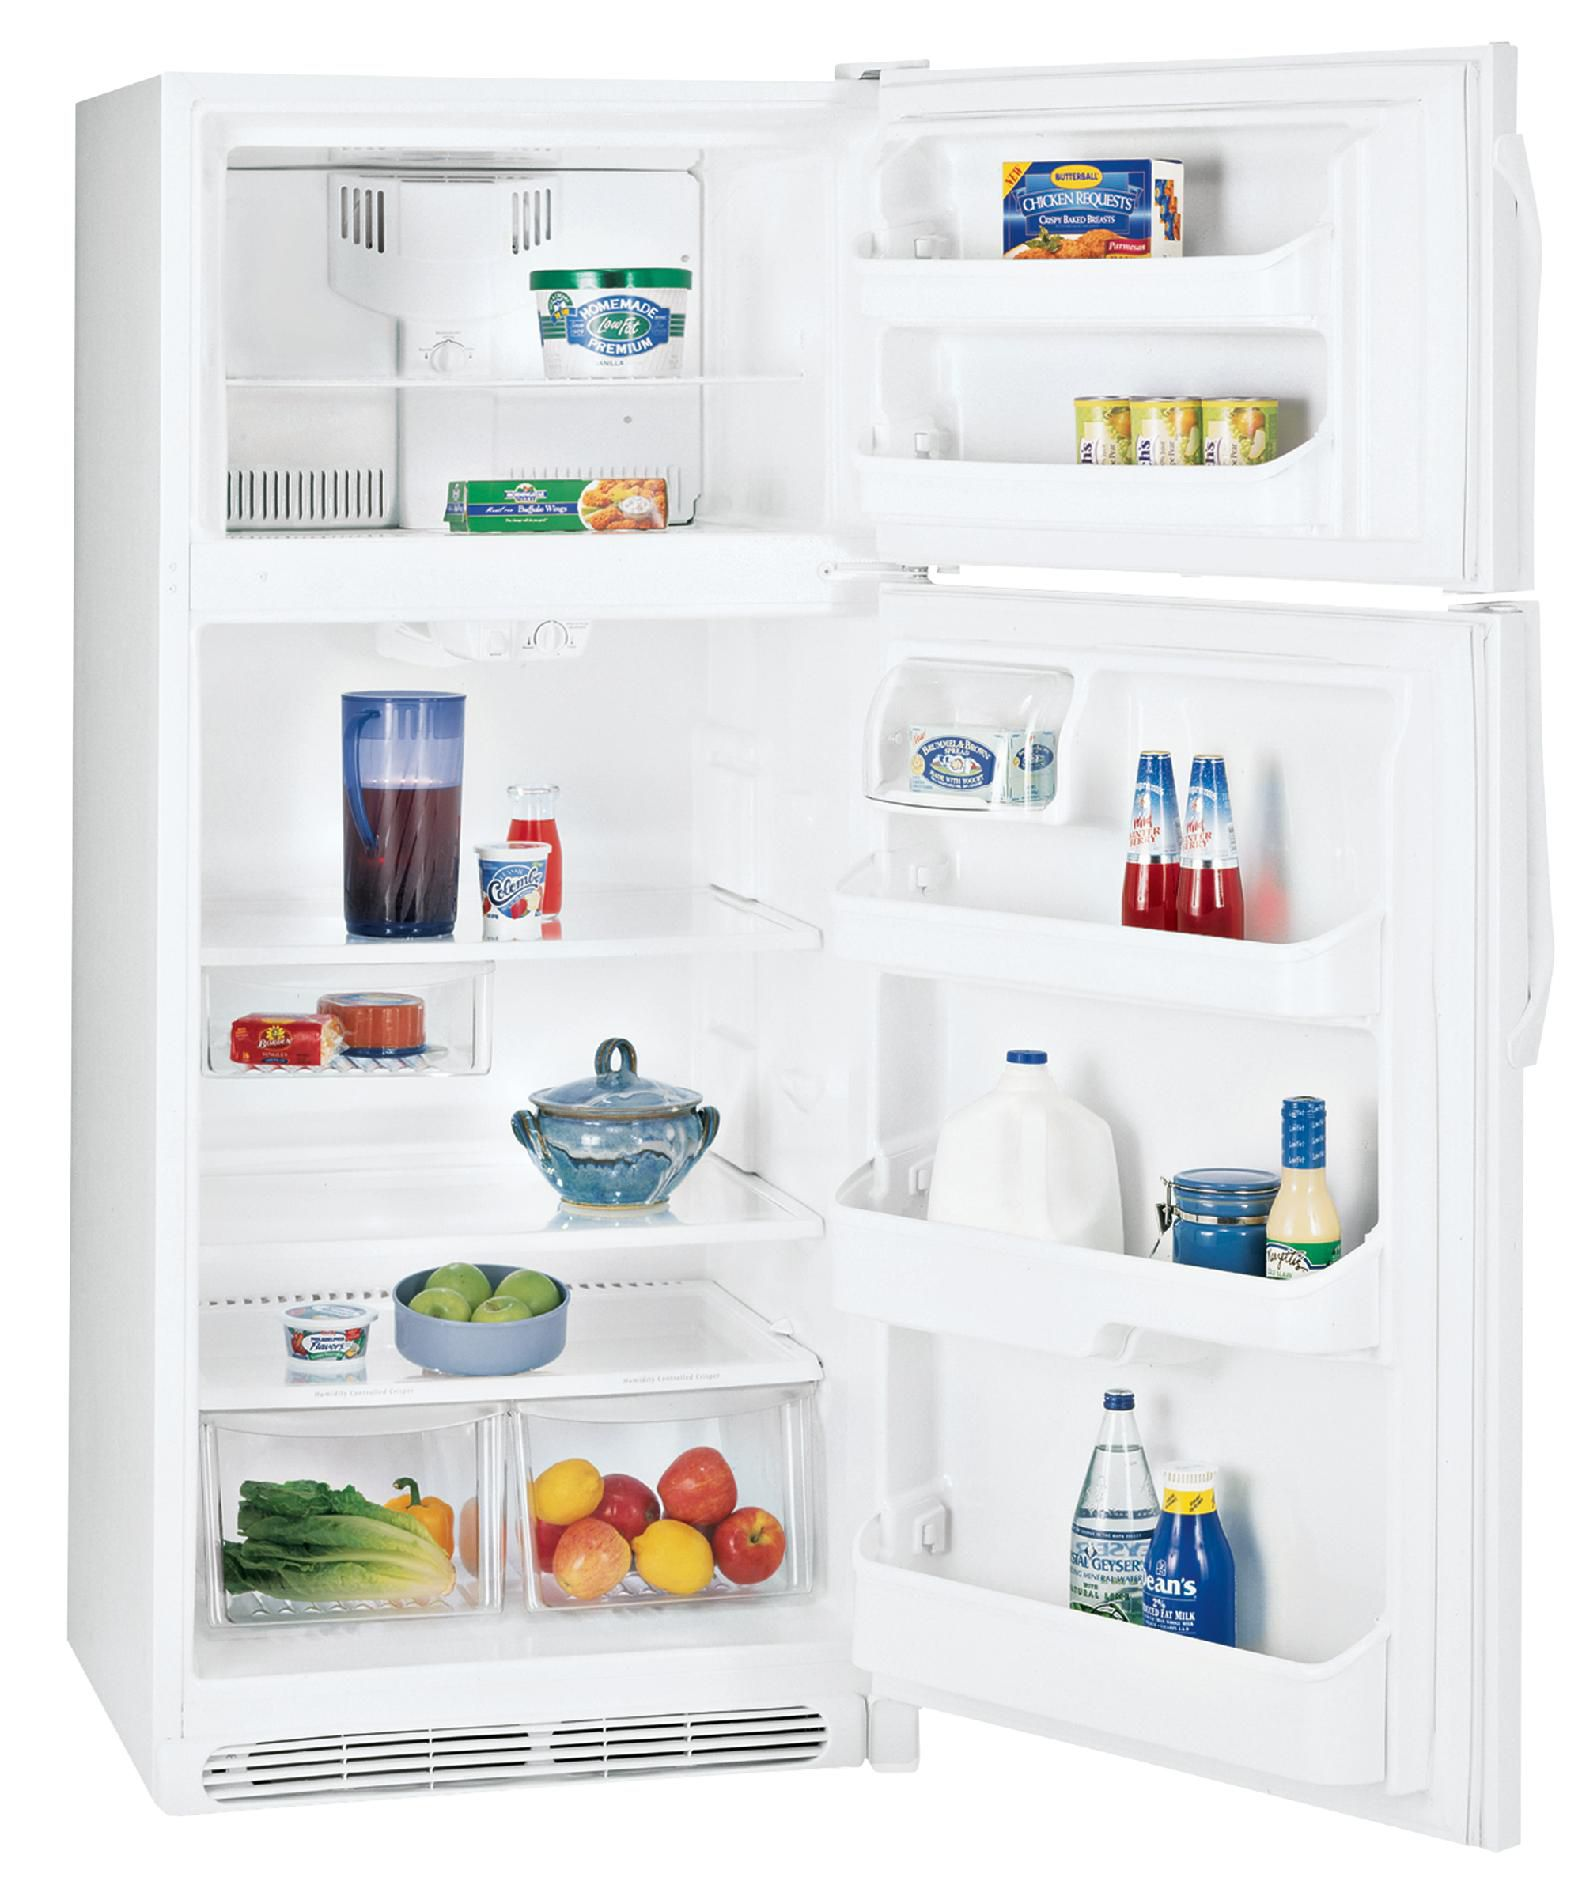 Kenmore 20.5 cu. ft. Top-Freezer Refrigerator - White